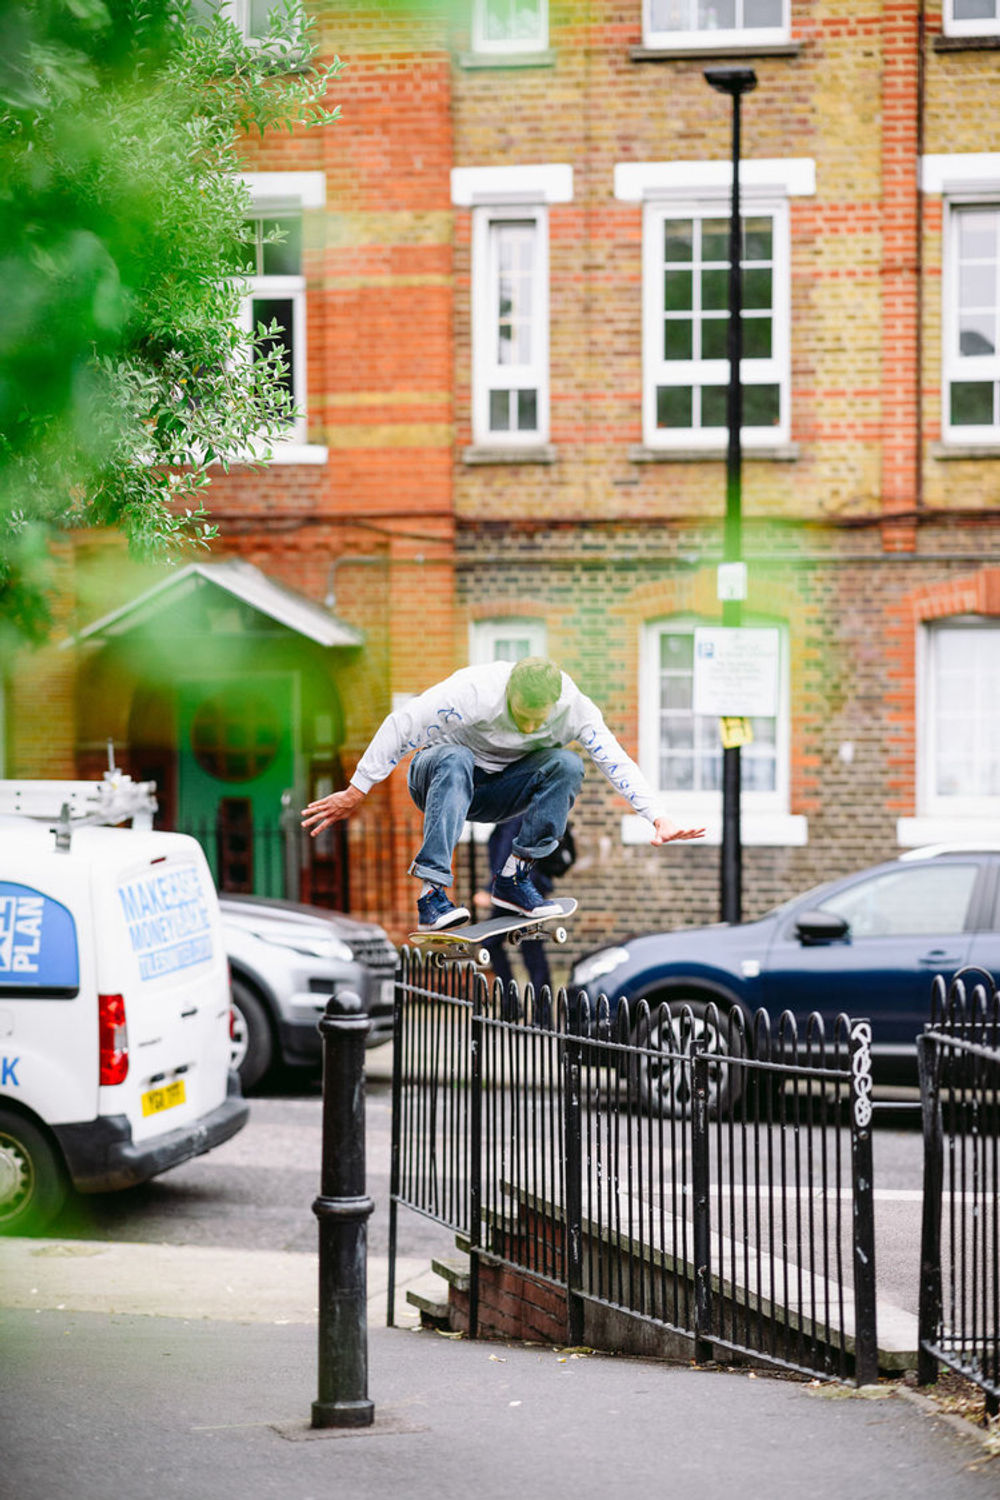 _ihc2803e-tristan-rudman-bs-180-levis-skateboarding-london-august-2017-photographer-maksim-kalanep